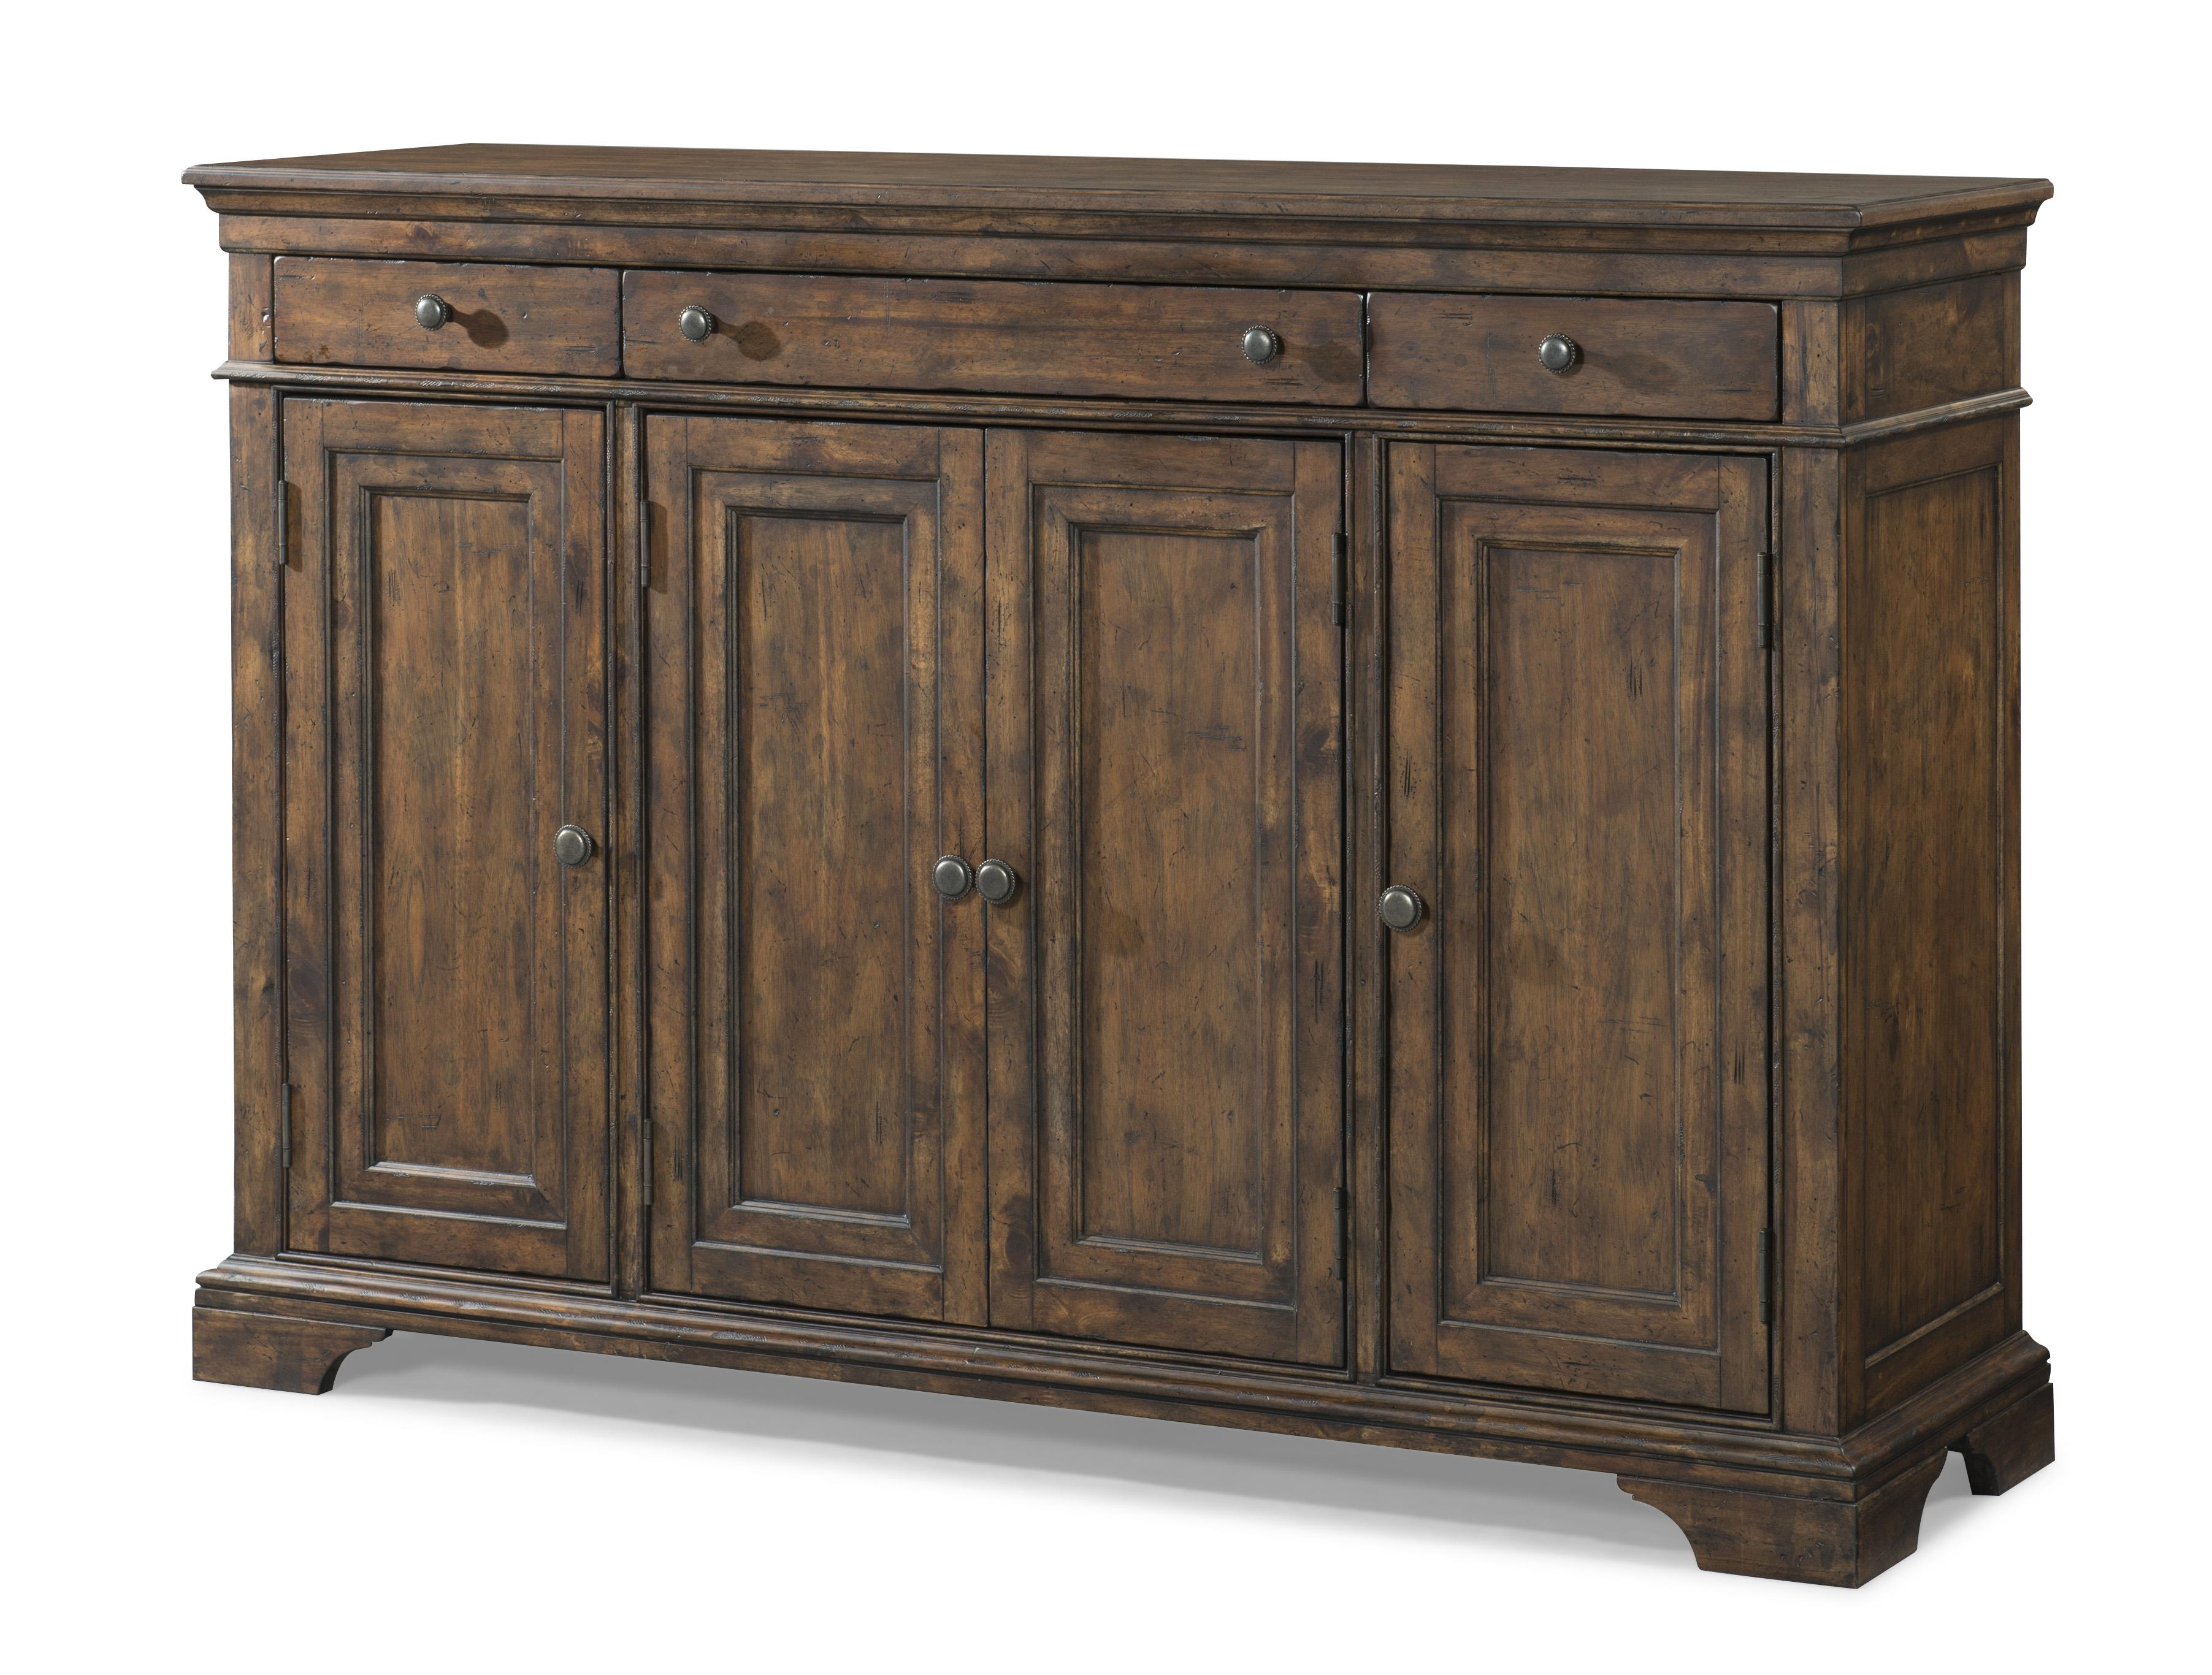 Trisha Yearwood Home Collection by Klaussner Trisha Yearwood Home Family Reunion Buffet - Item Number: 920-895 BUFF